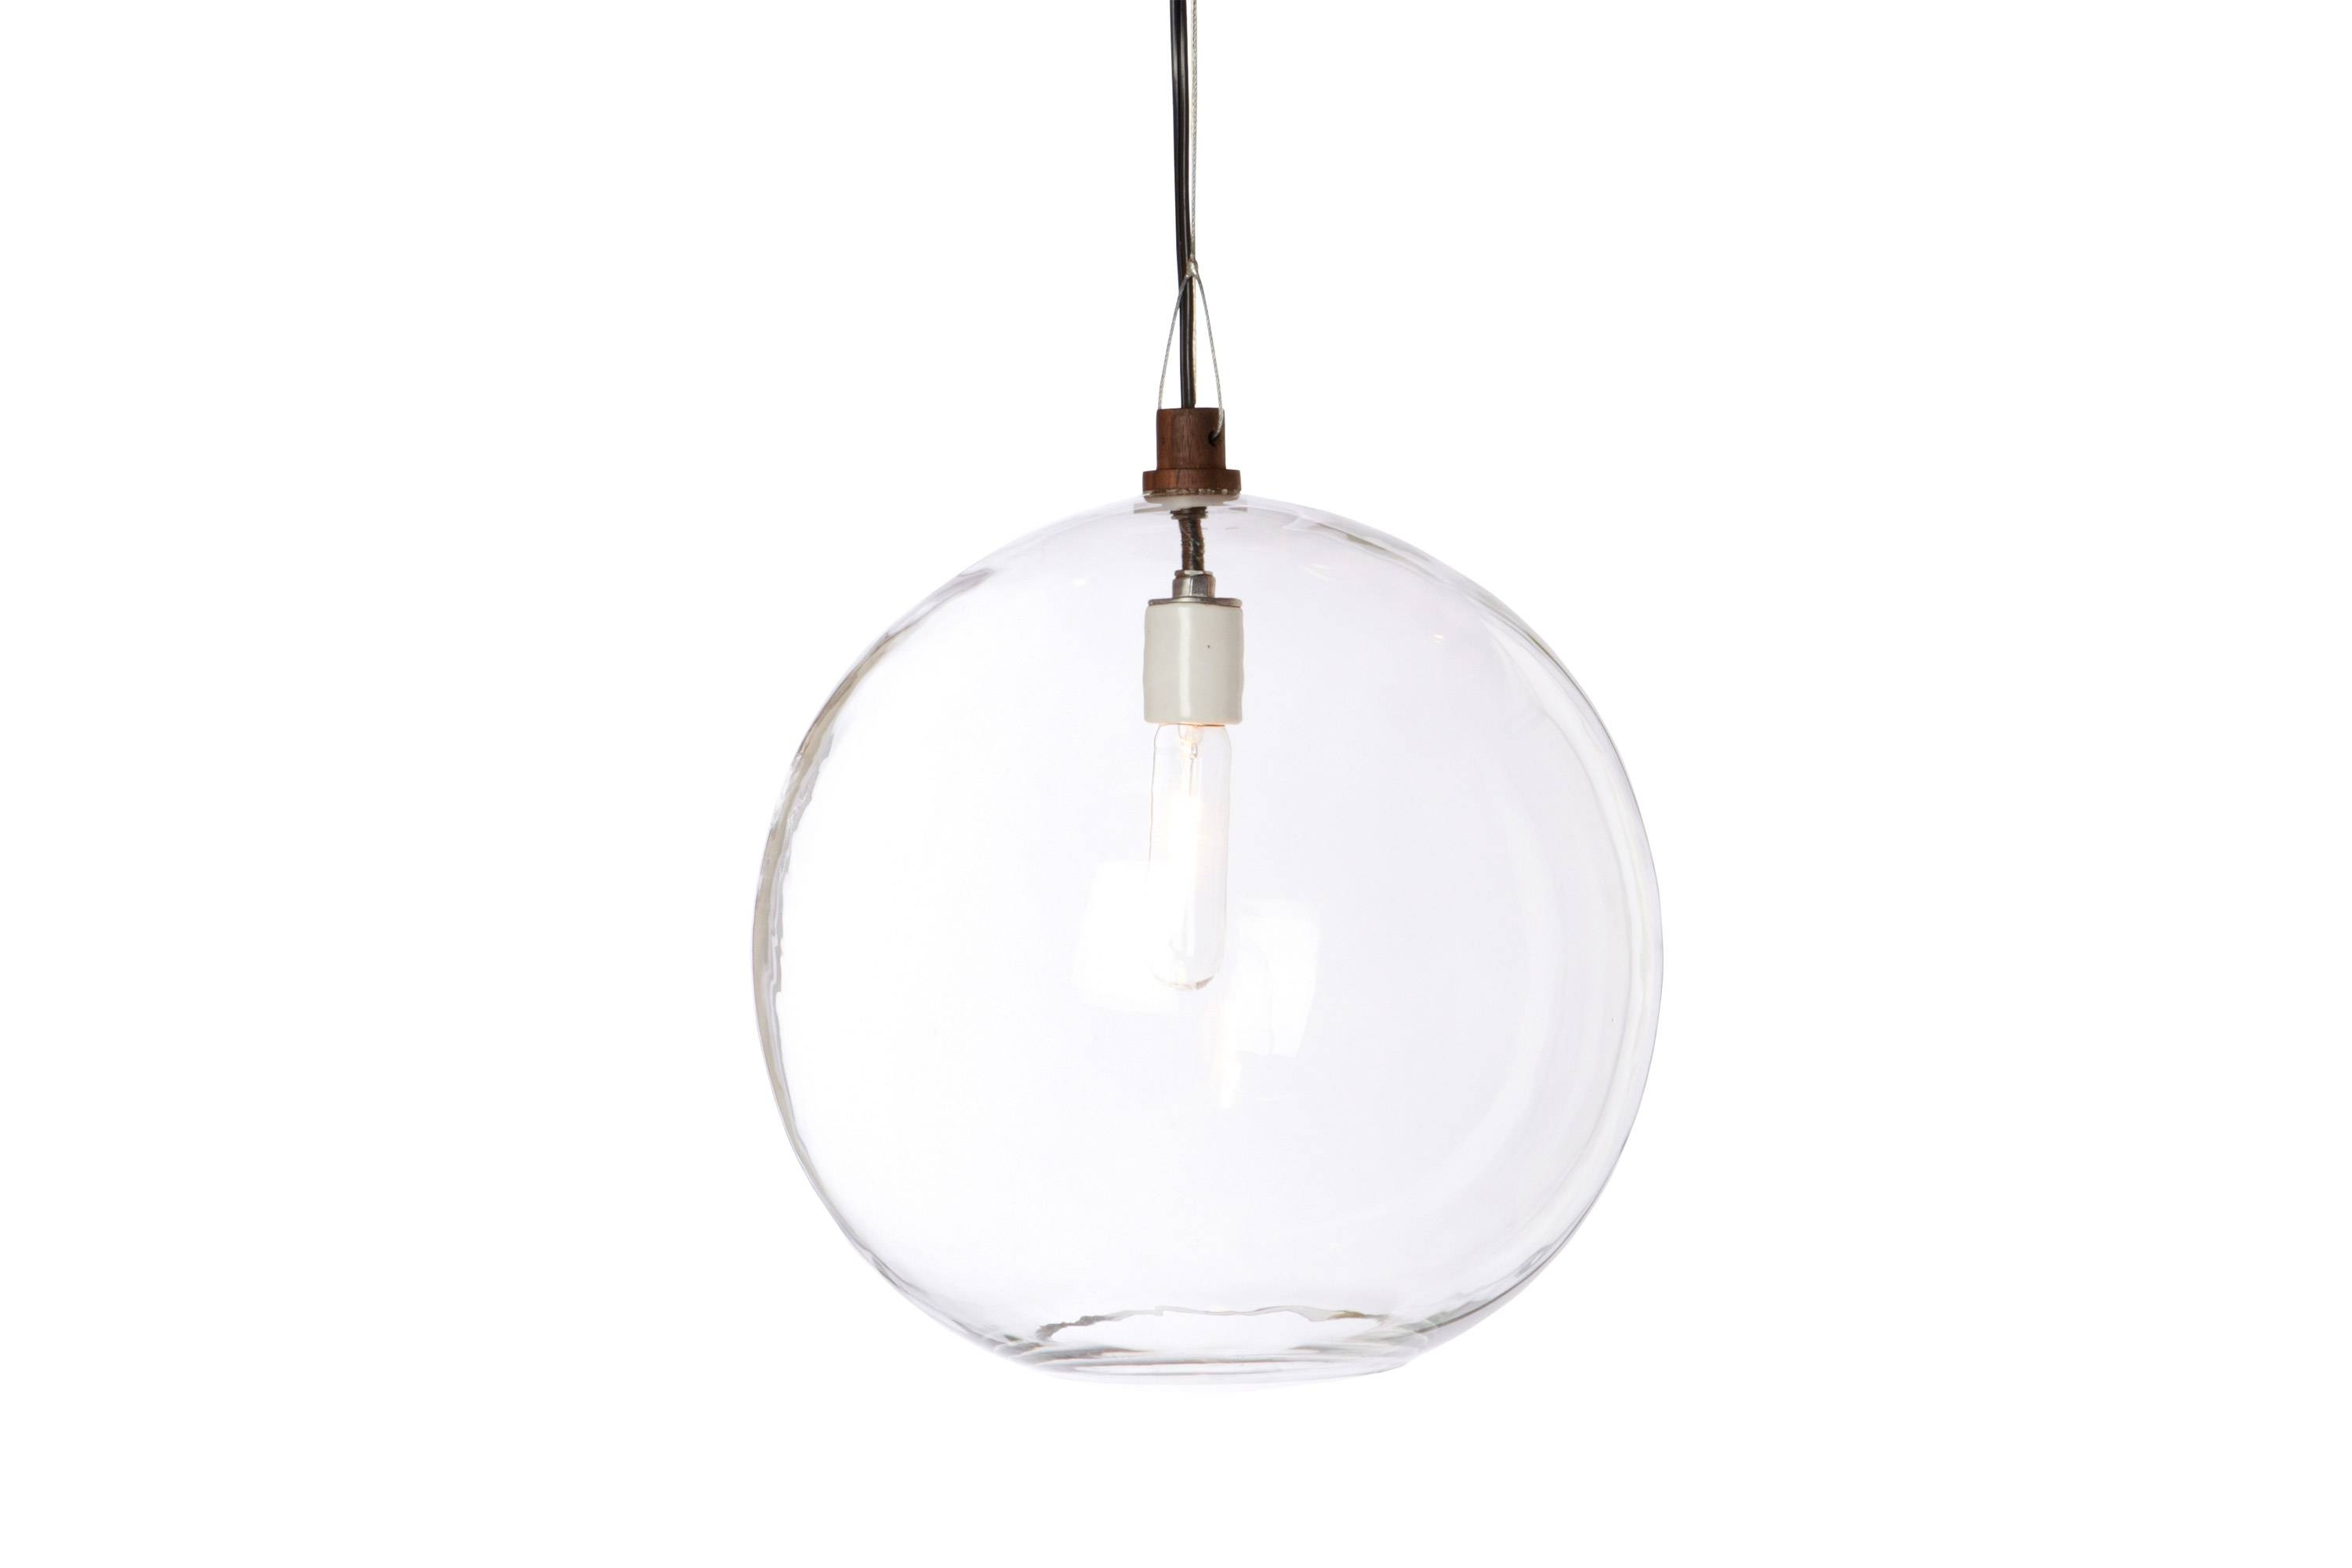 Pendant regarding Clear Glass Globe Pendant Light Fixtures (Image 9 of 15)